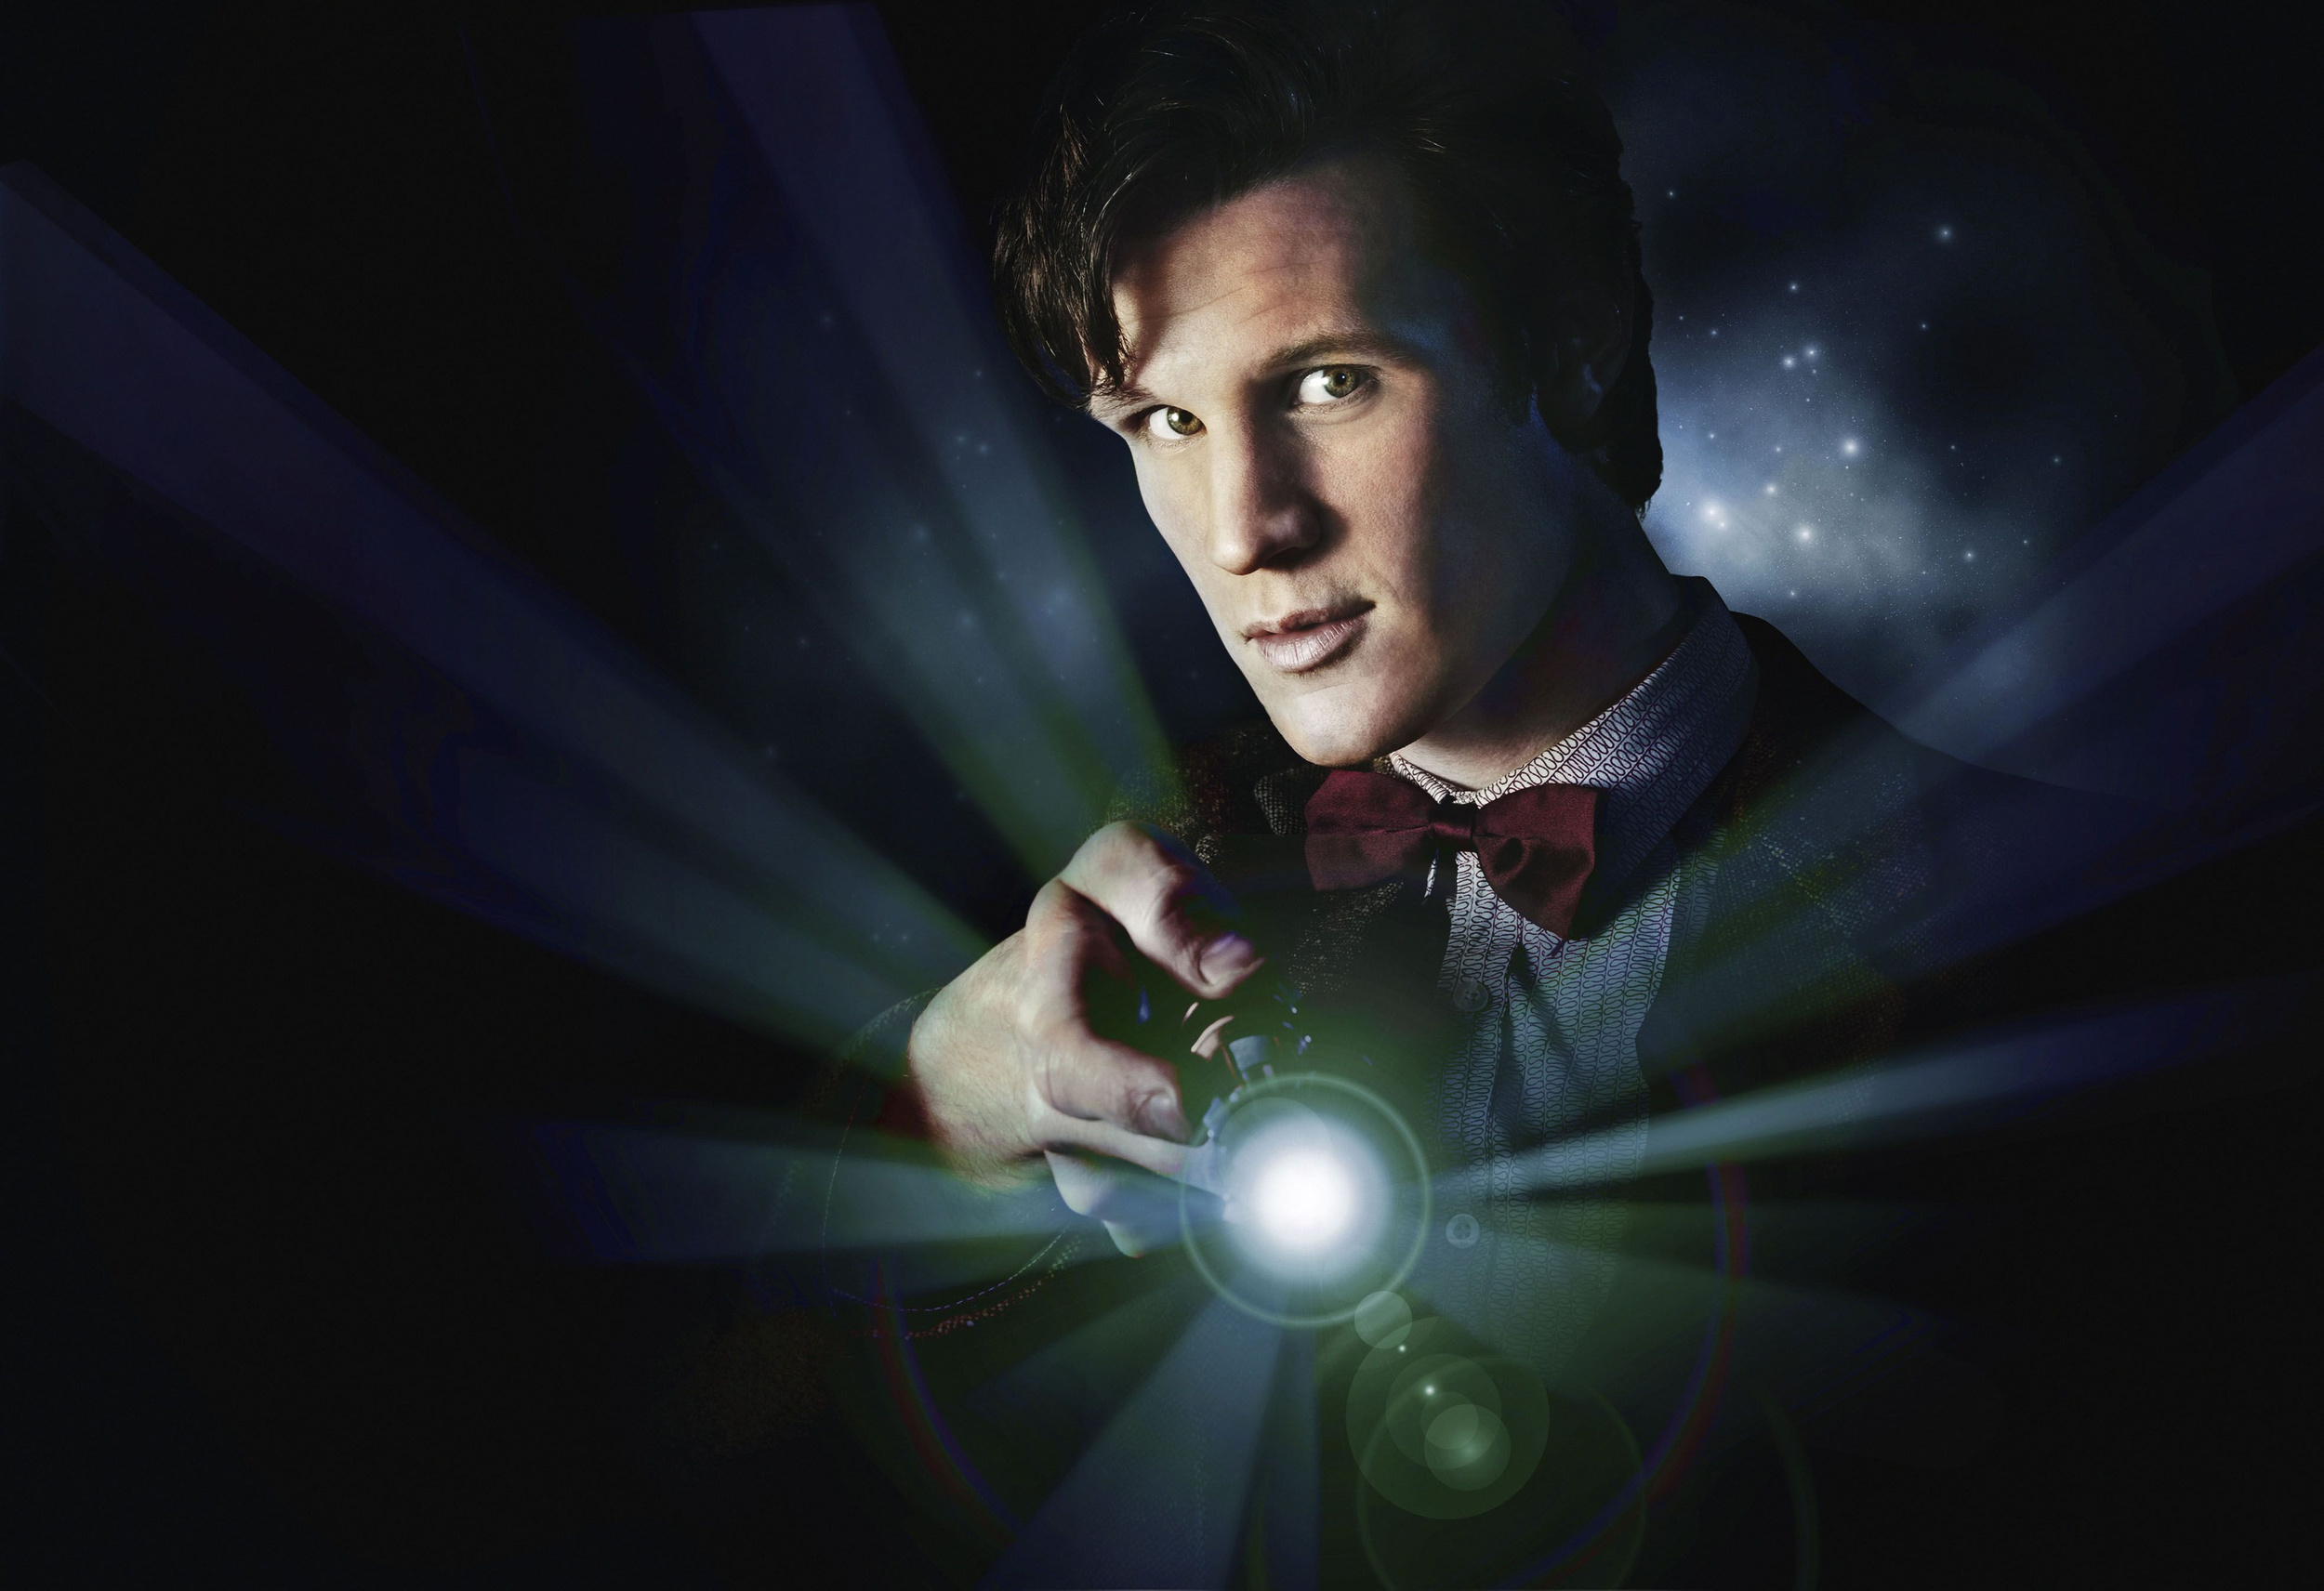 Matt Smith Is The Eleventh Doctor An Incarnation Of The Doctor